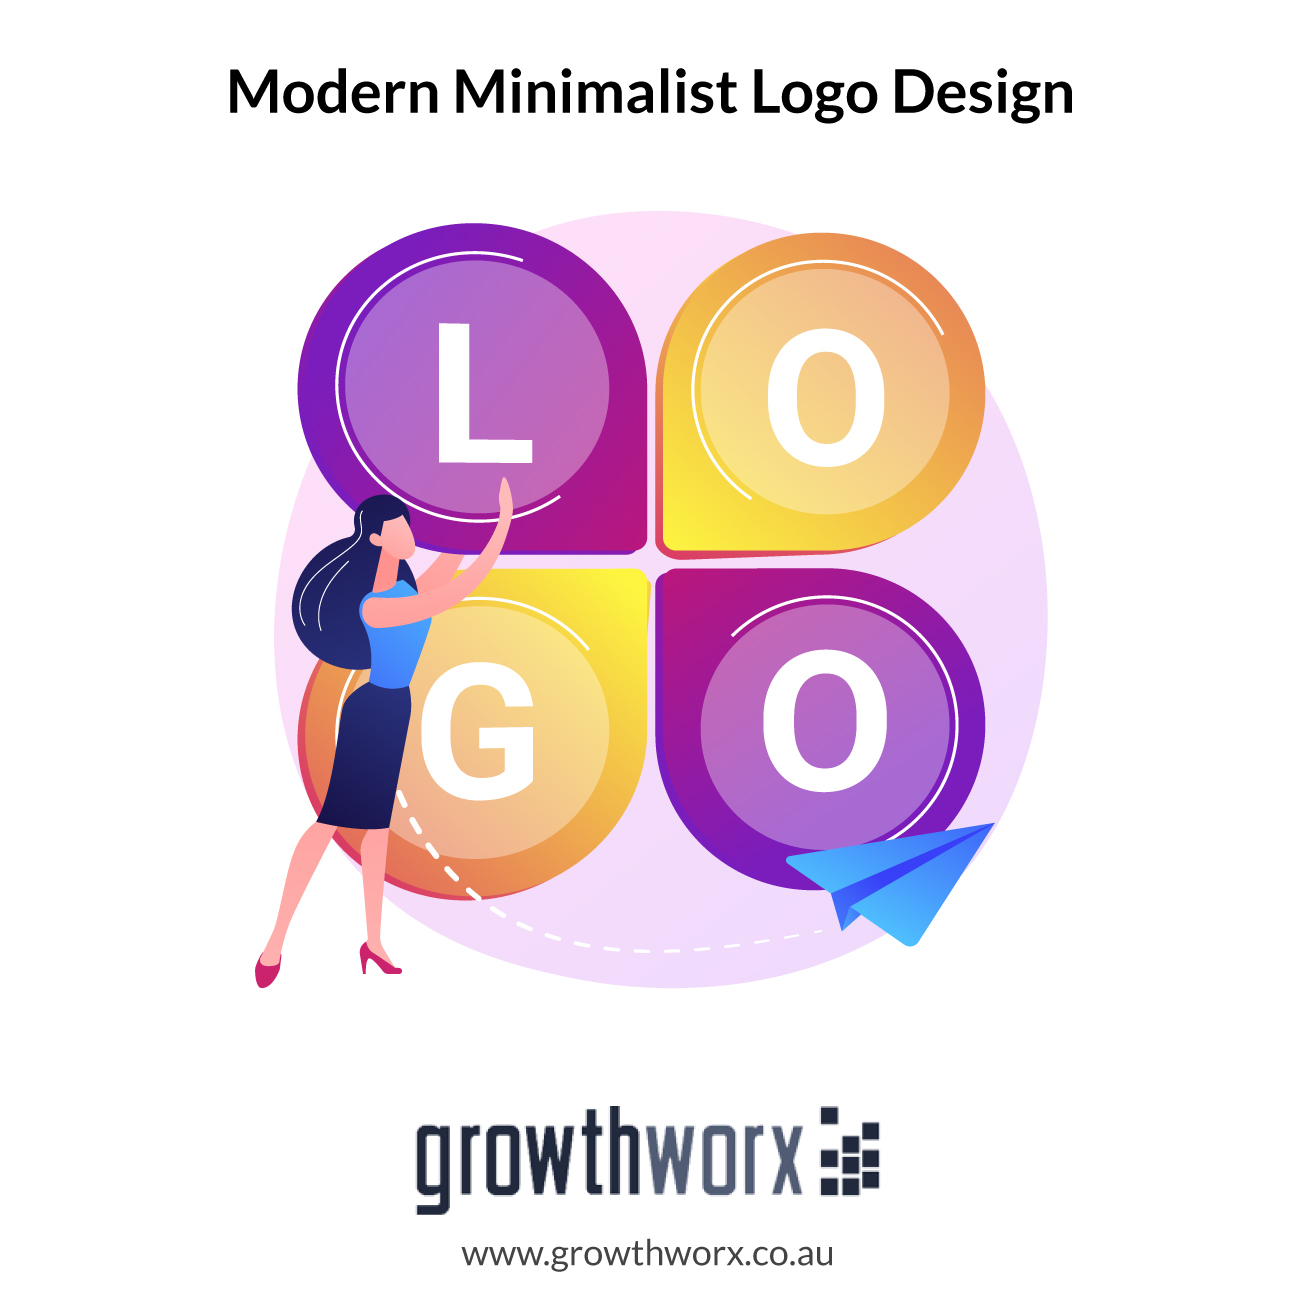 I will design 2 modern minimalist logo design 1